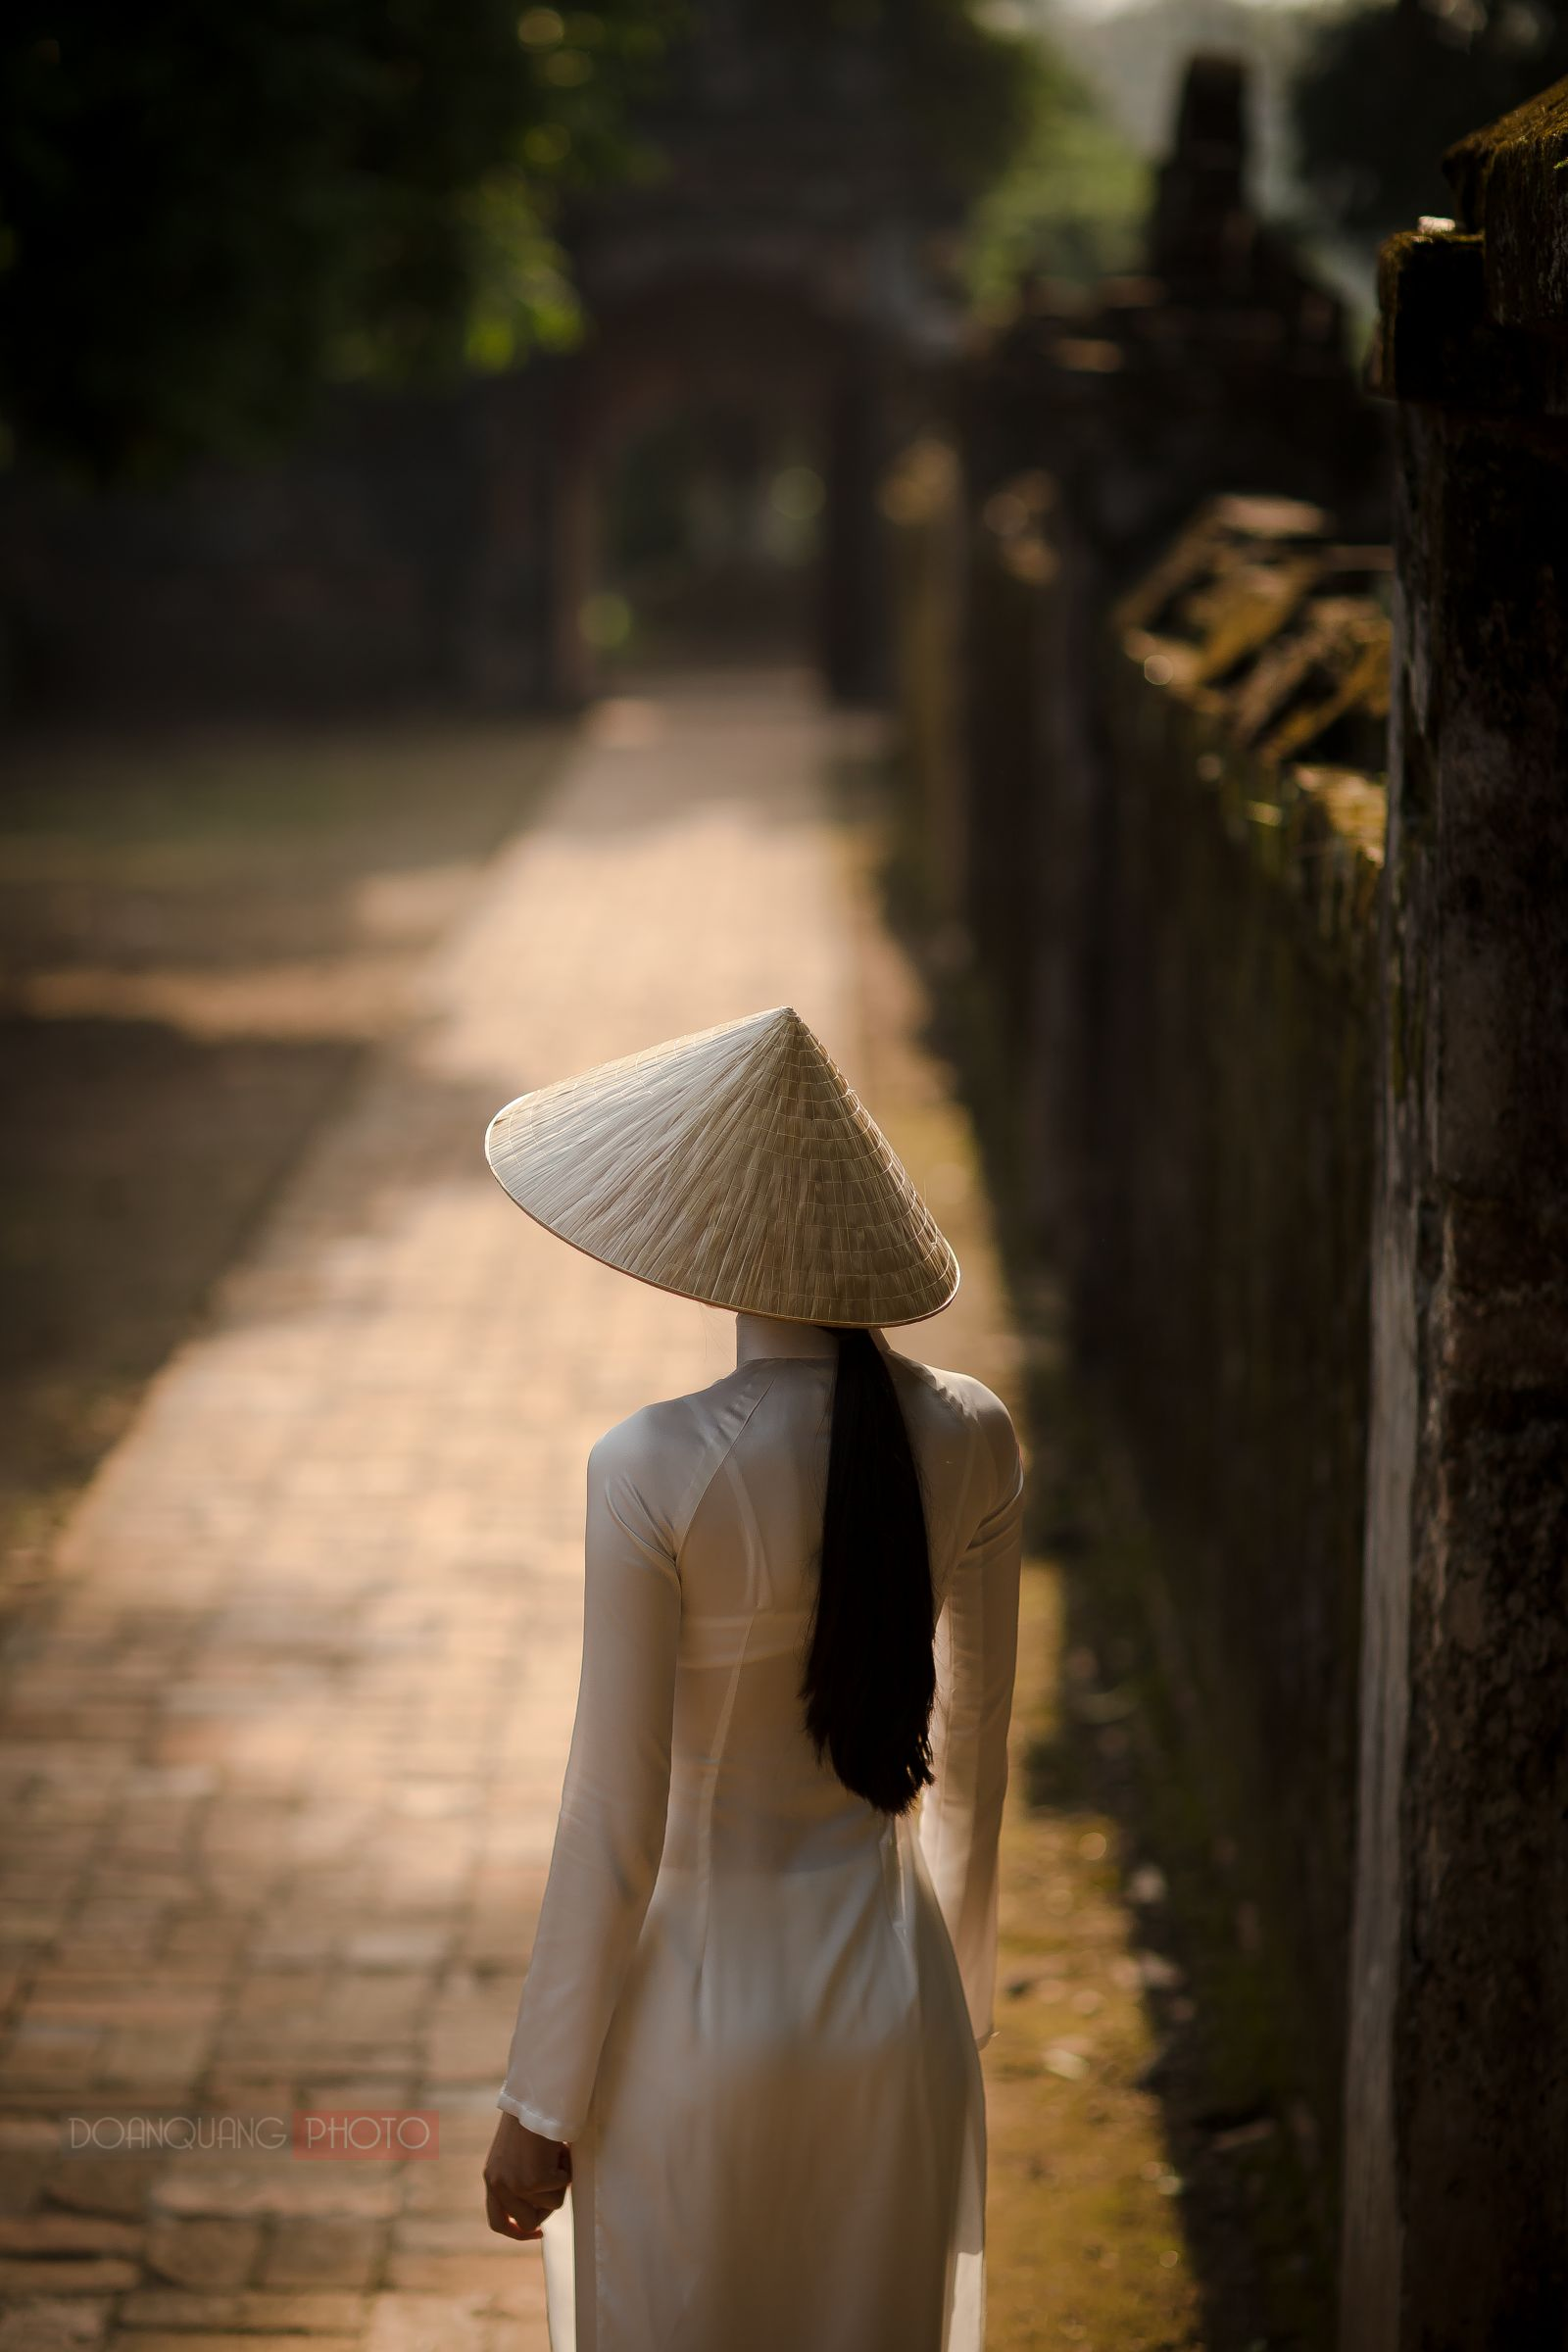 The figure of a girl in ao dai